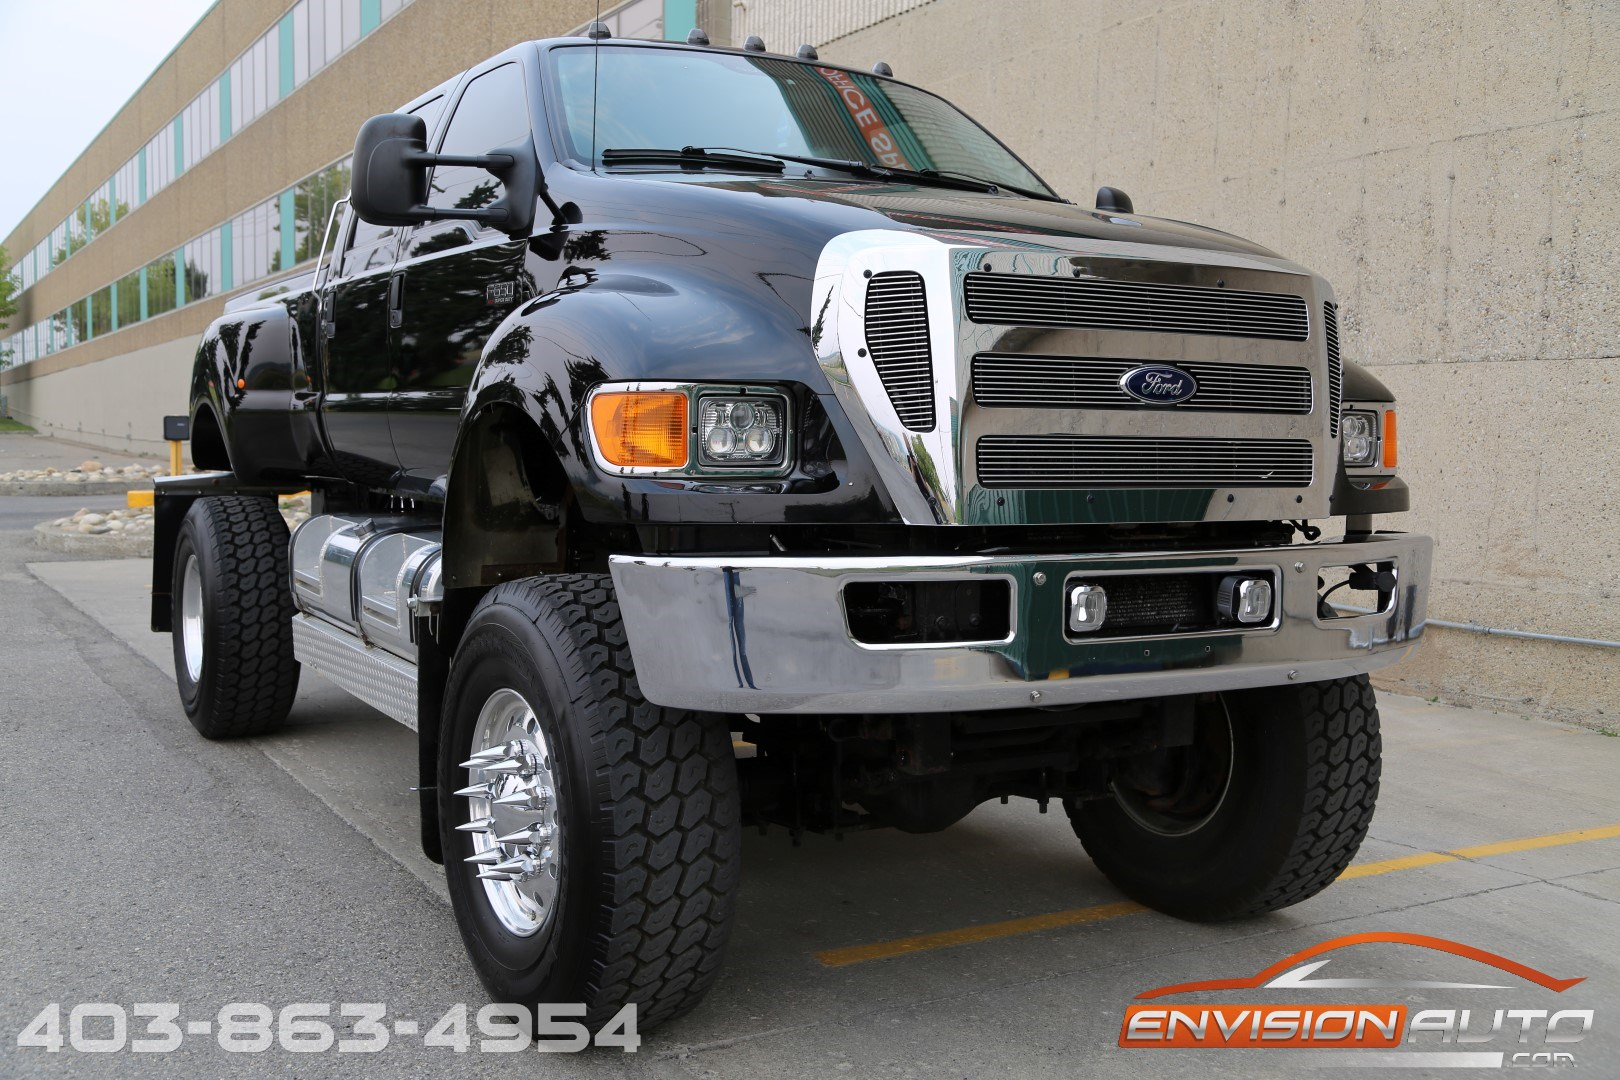 2008 ford f 650 xlt superduty crew cab 4 x 4 custom. Black Bedroom Furniture Sets. Home Design Ideas